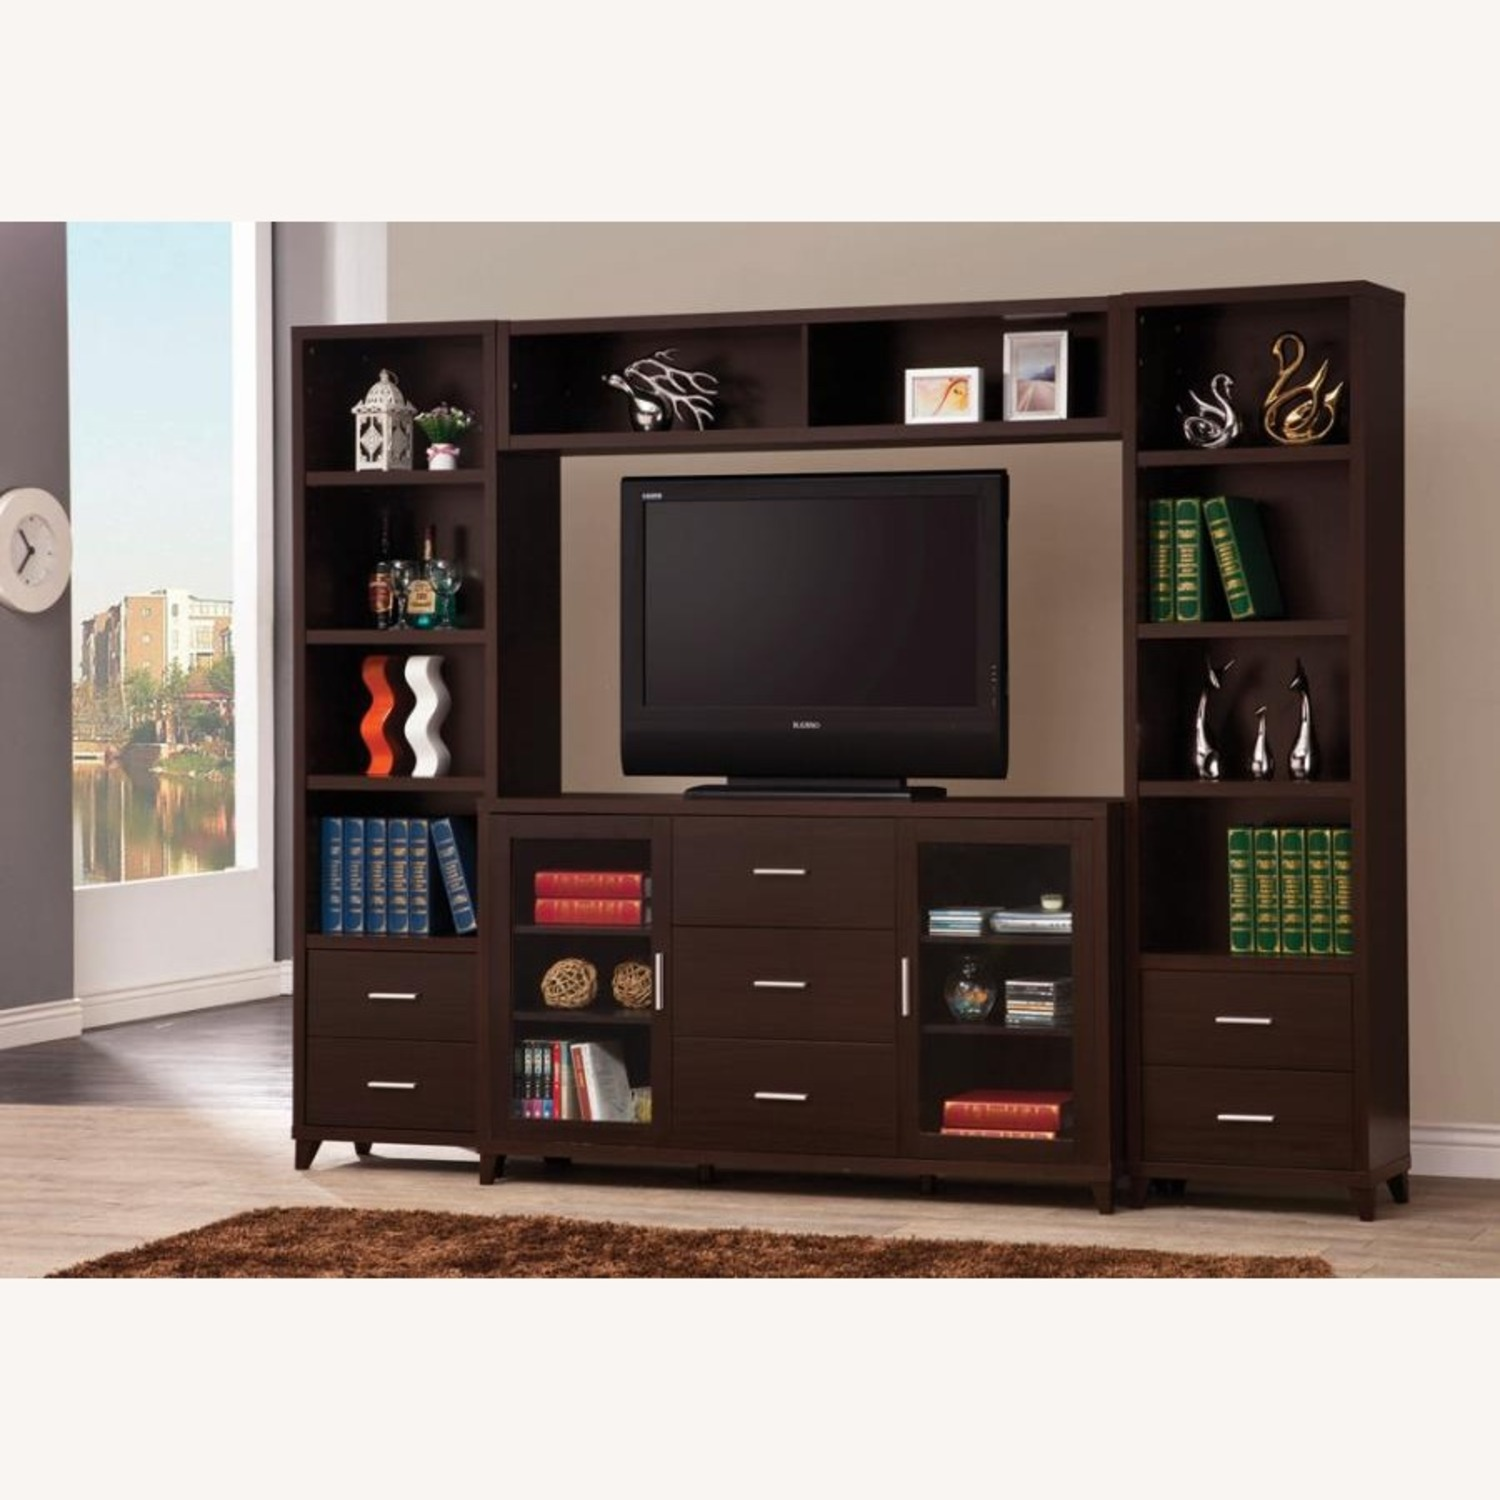 TV Console In Cappuccino Finish W/ Storage Drawers - image-3